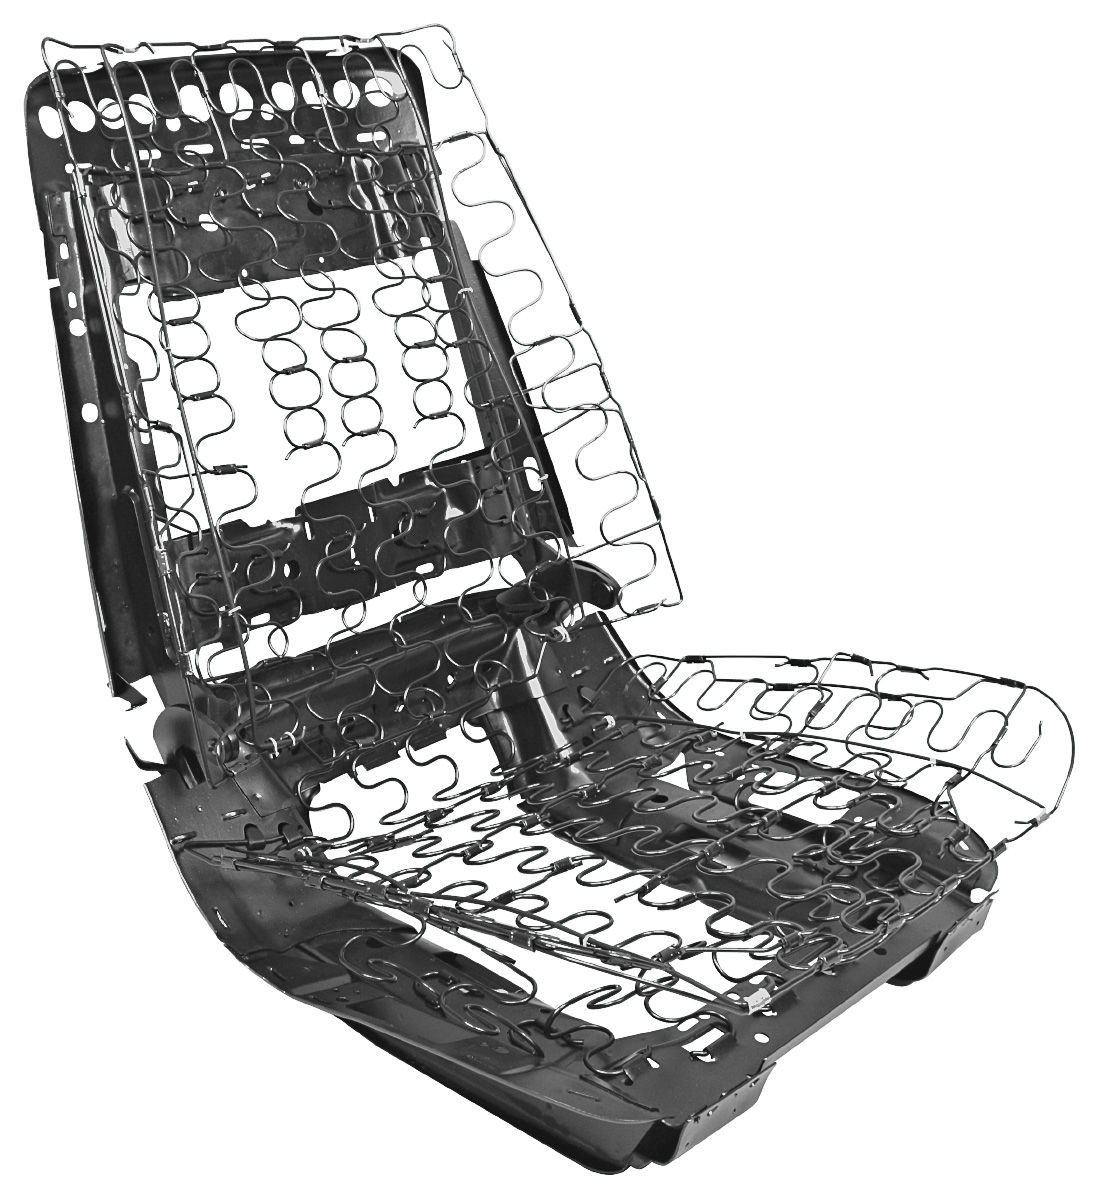 1969-72 Chevelle Seat Frame Assembly (Bucket Seat), by